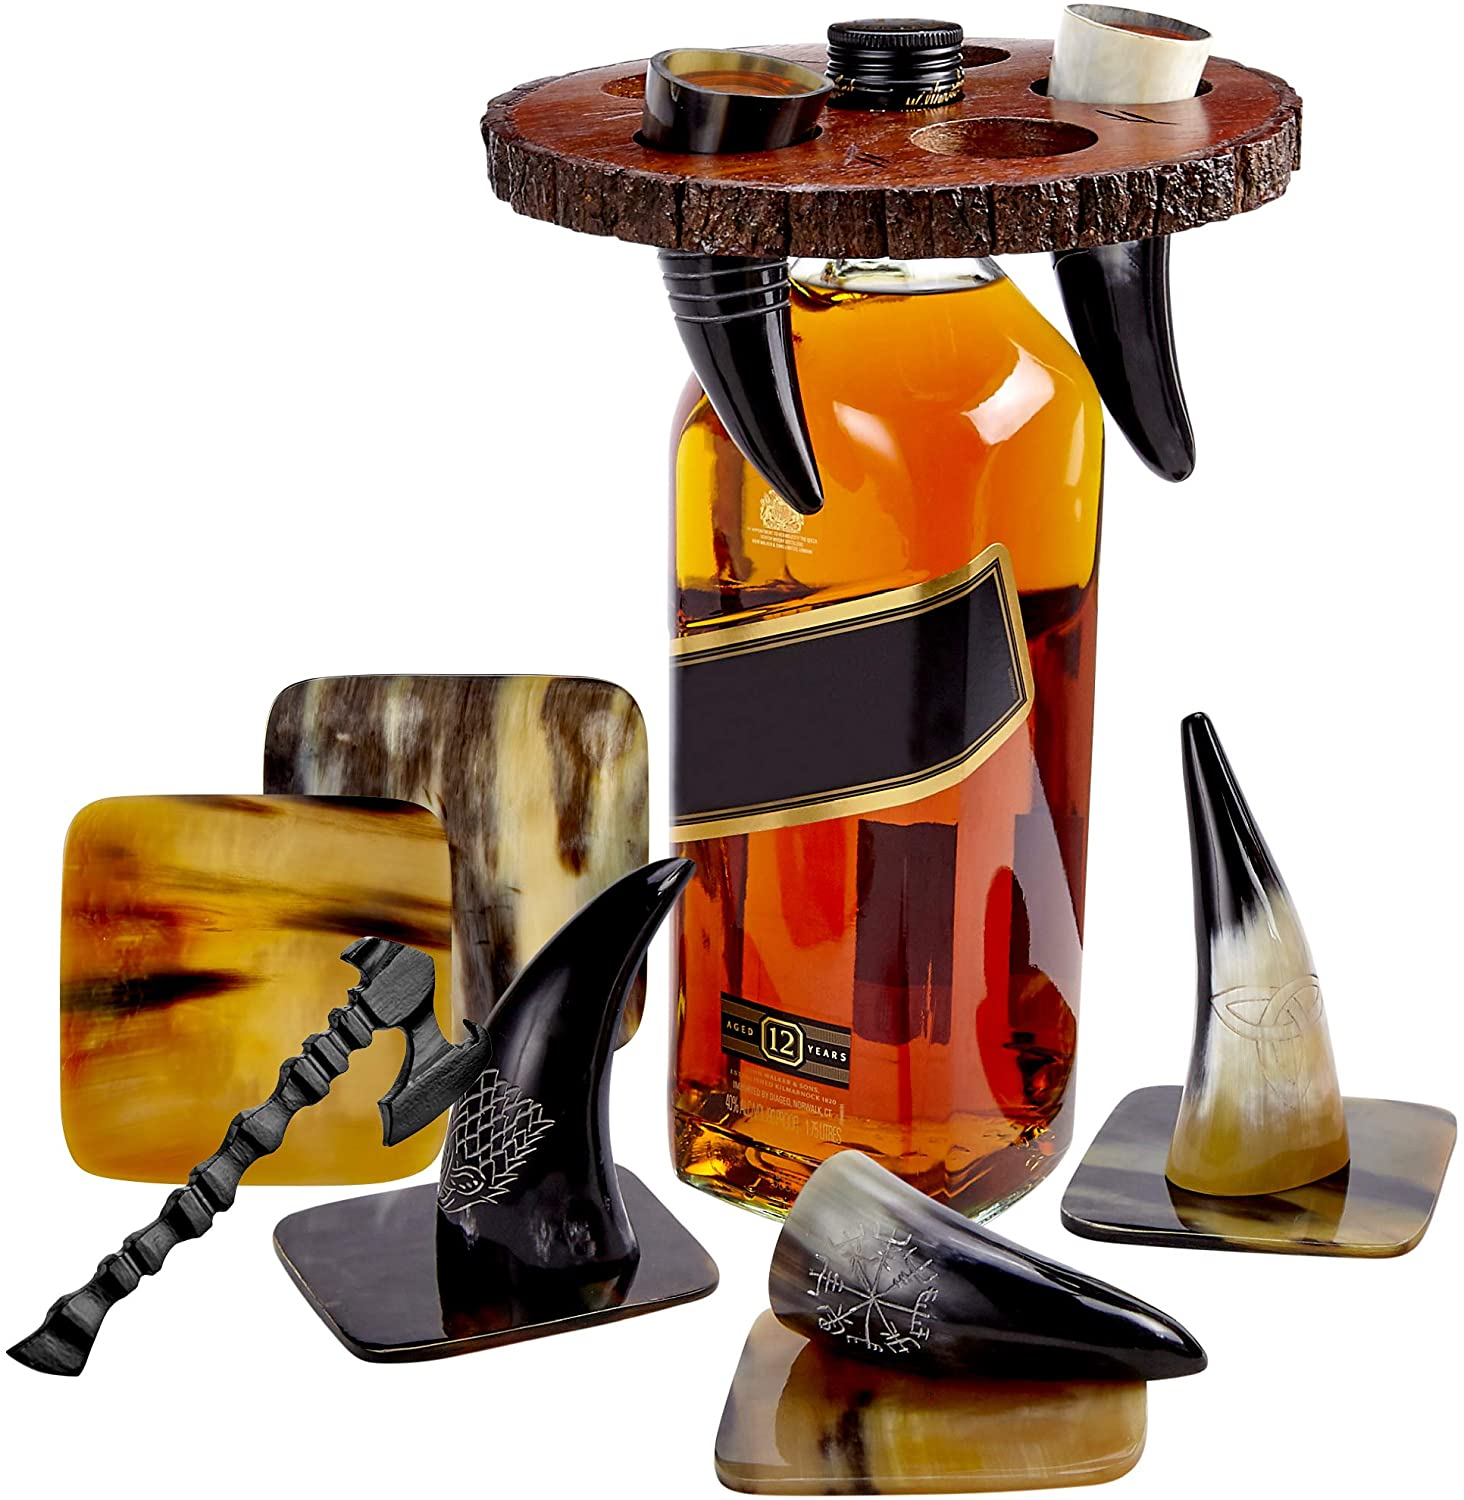 Viking Culture Viking Horn Drinking Cup Shot Glasses with Vintage Axe Bottle Opener, Coasters, and Rustic Wood Display Stand, Toasting Vessels for Party, Event, Bachelors